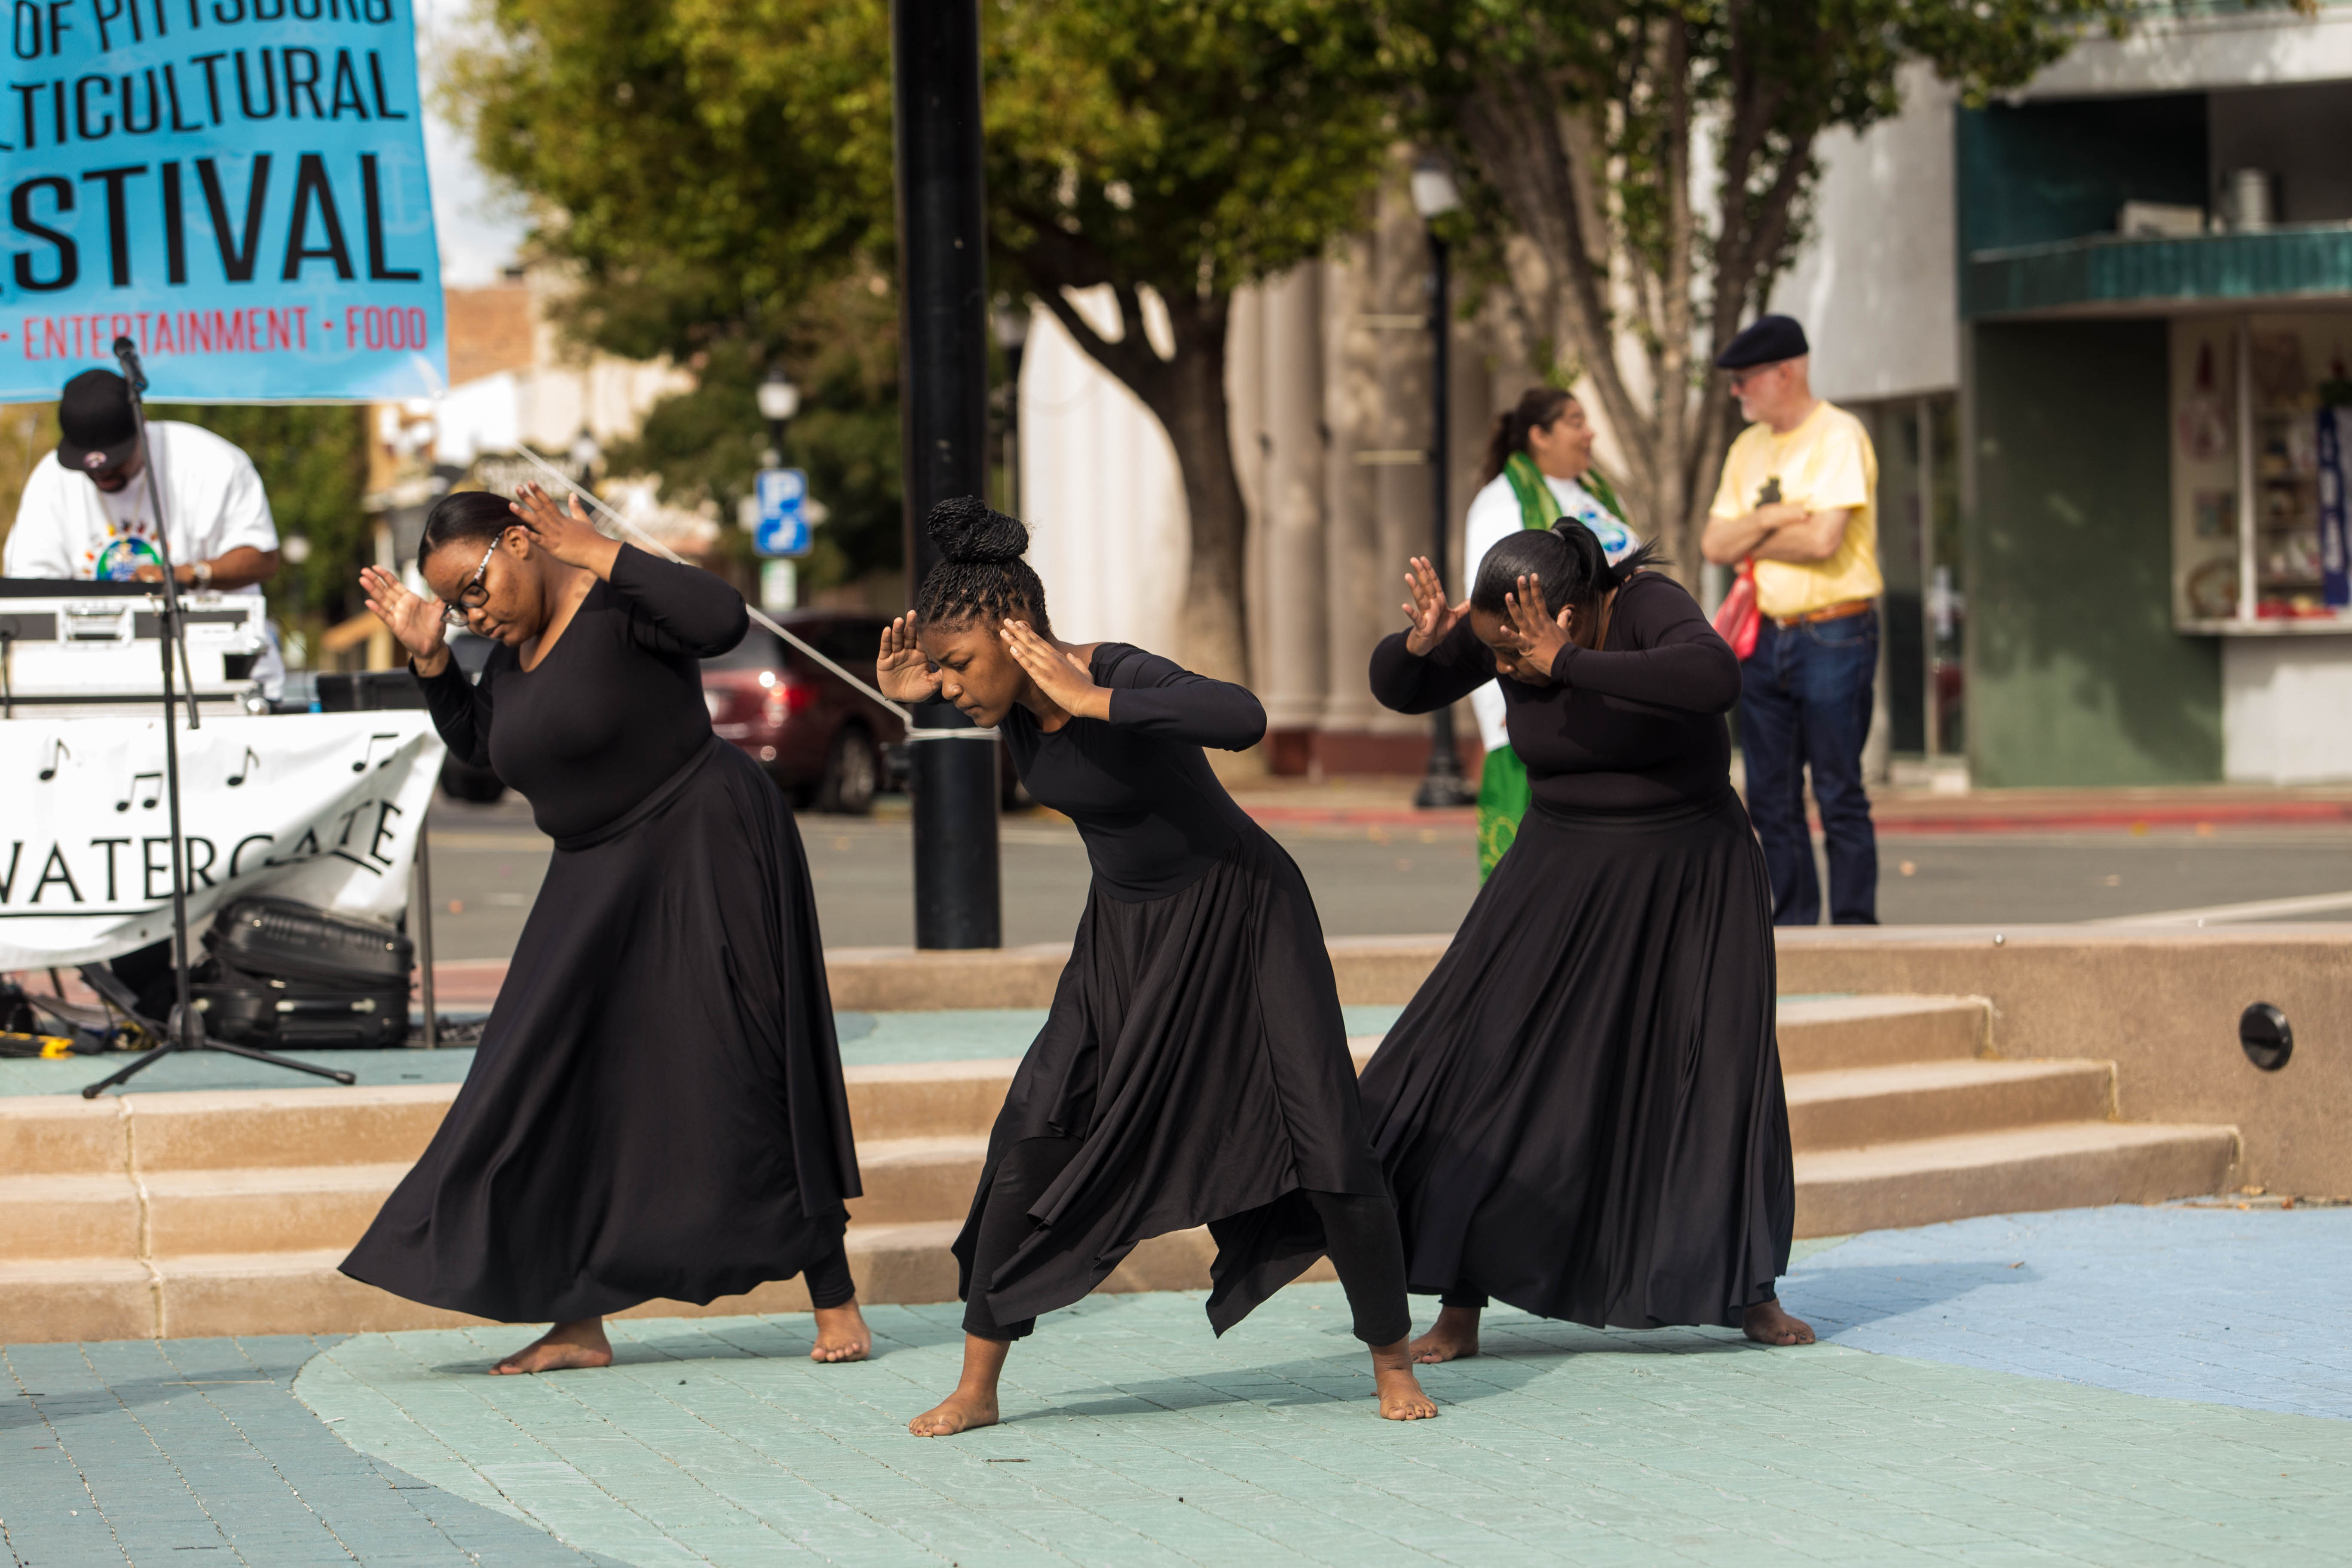 CITY_PITTSBURG_MULTICULTURAL_OCTOBER_2016 (740)